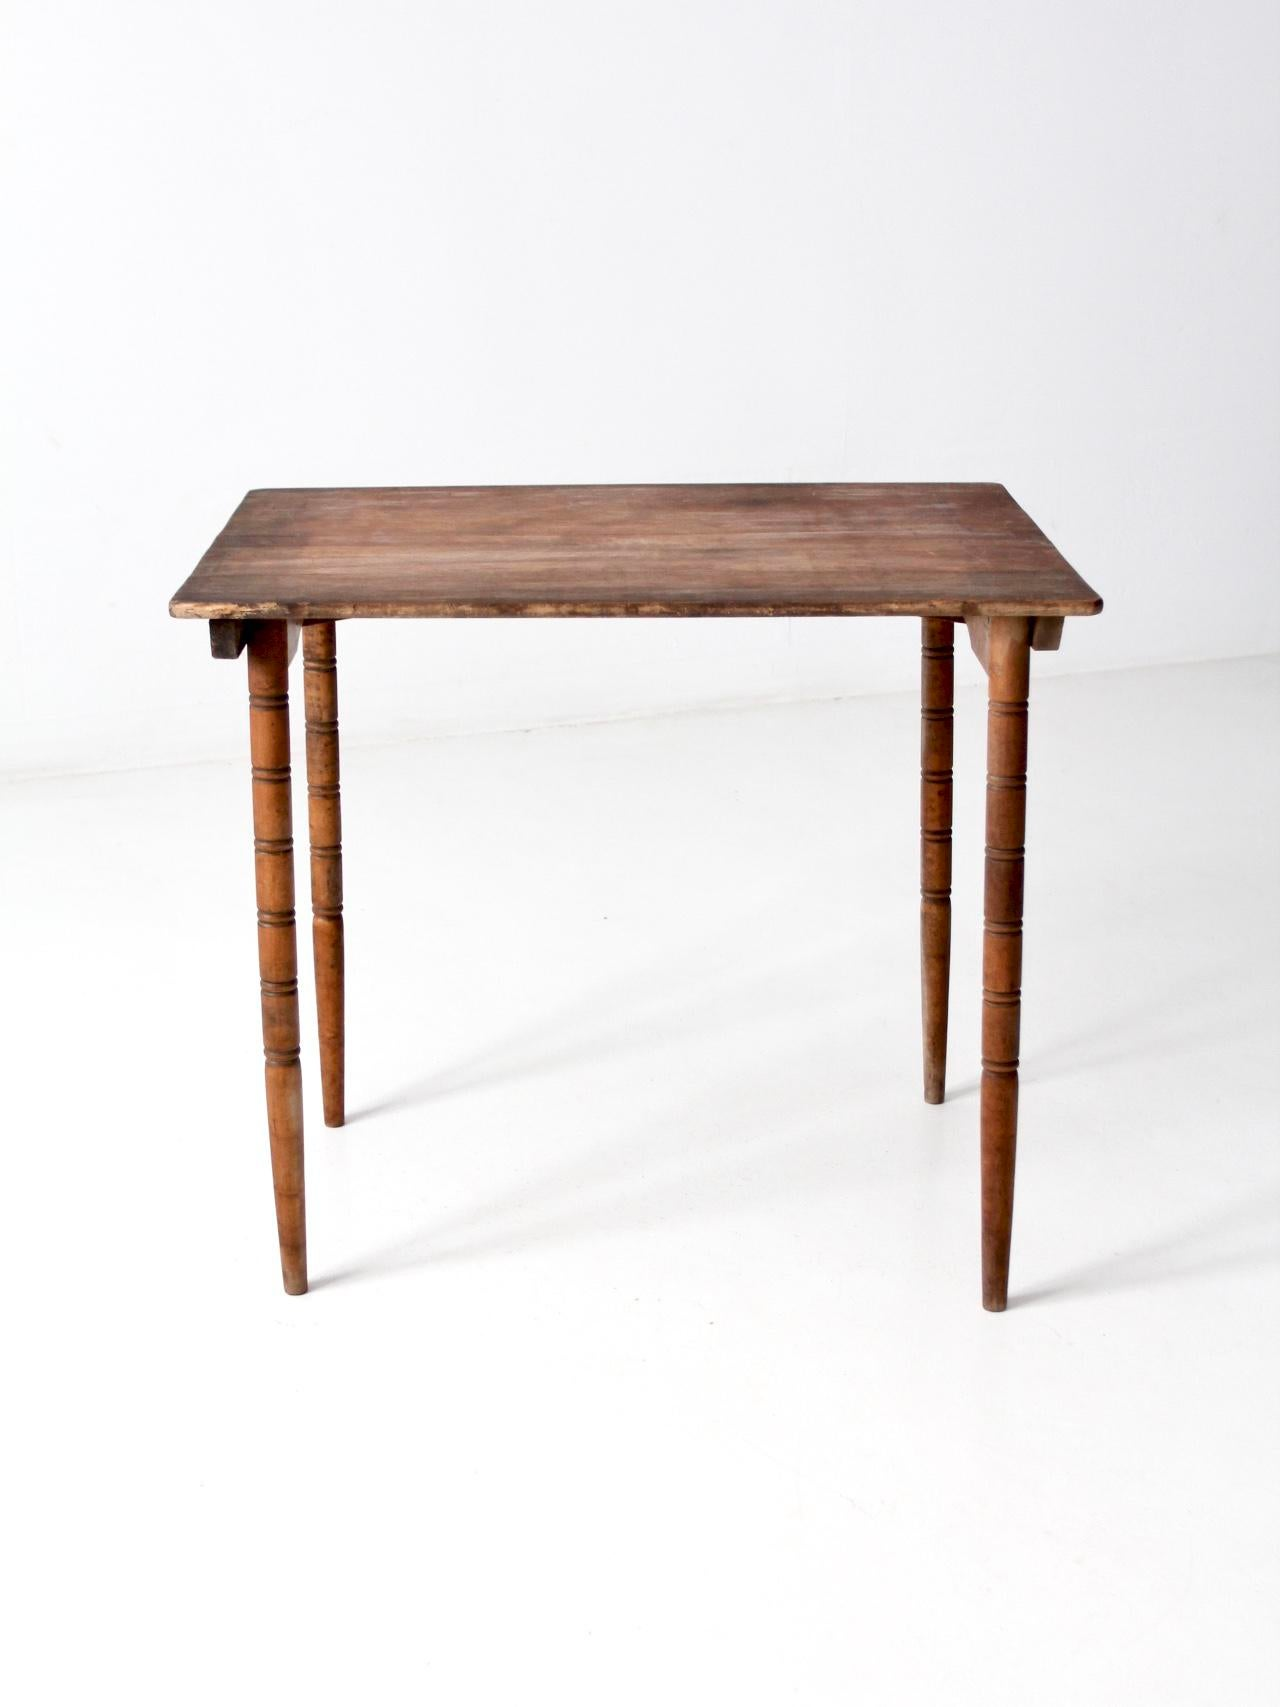 This Is An Antique Wooden Folding Table. The Wood Table Features Turned Wood  Legs That